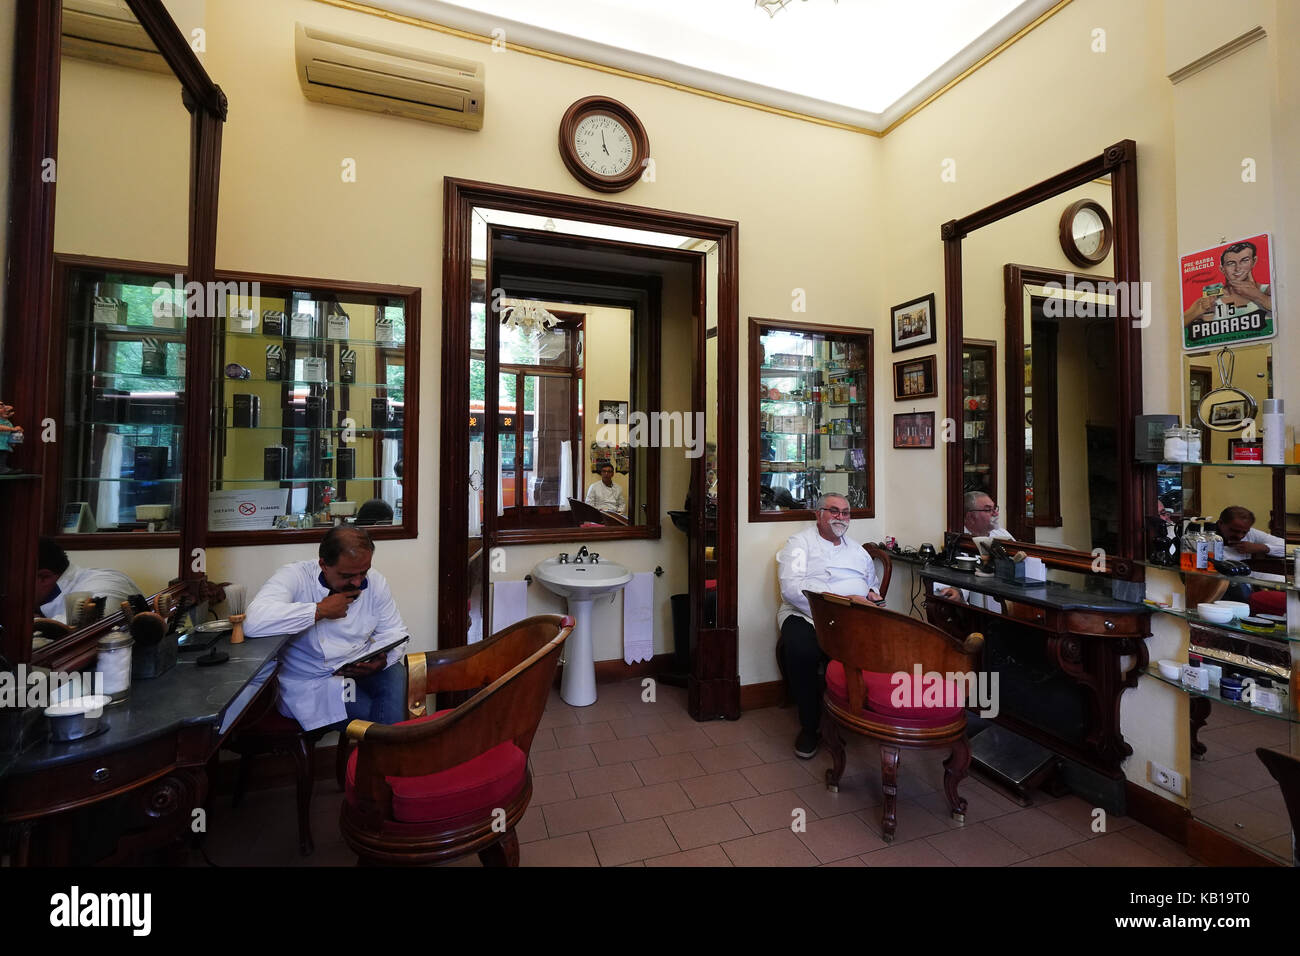 Traditional Barber Shop Stock Photos & Traditional Barber ...